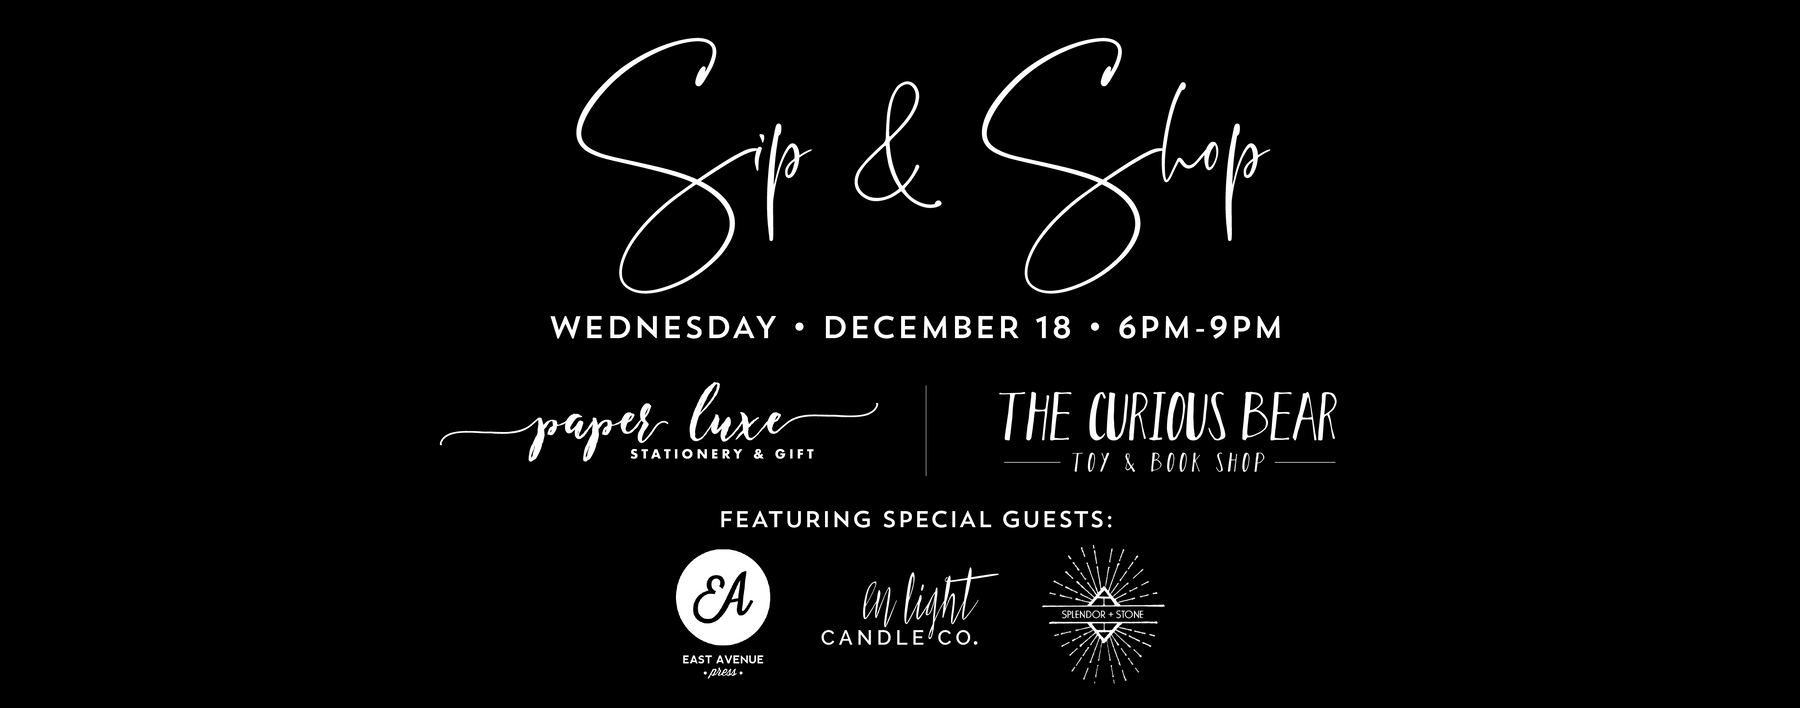 Holiday Sip & Shop Event!